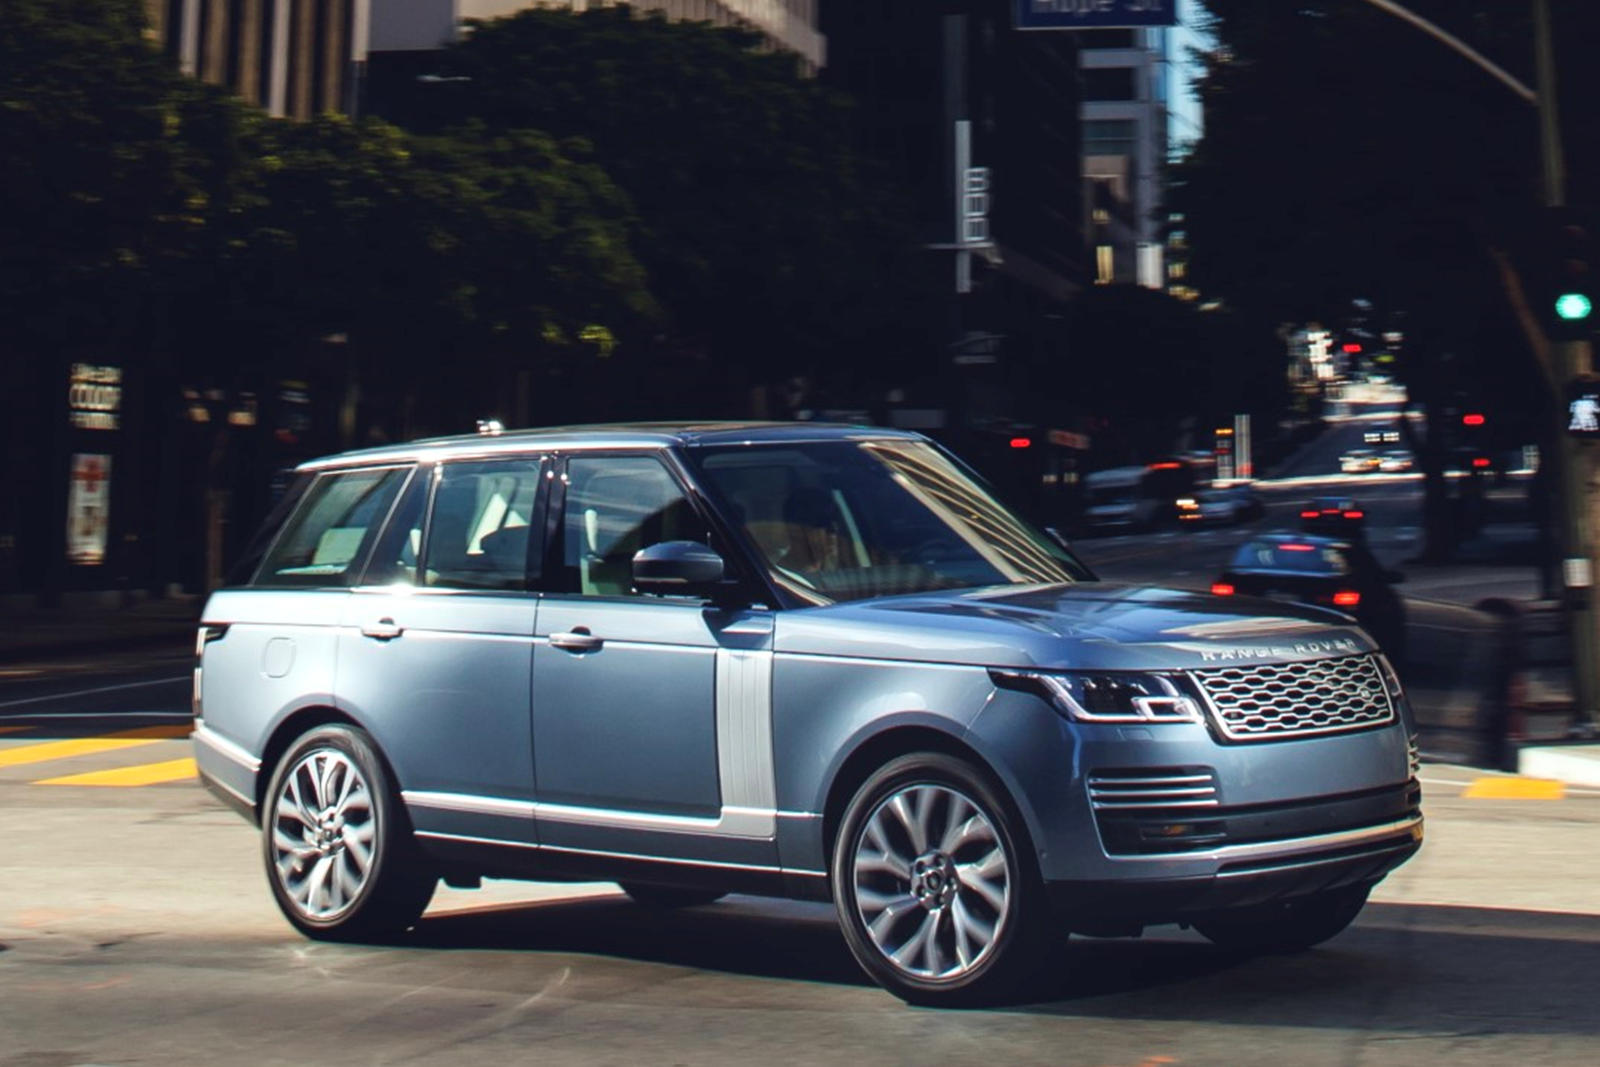 2021 Land Rover Range Rover plug-in-hybrid SUV front third quarter view